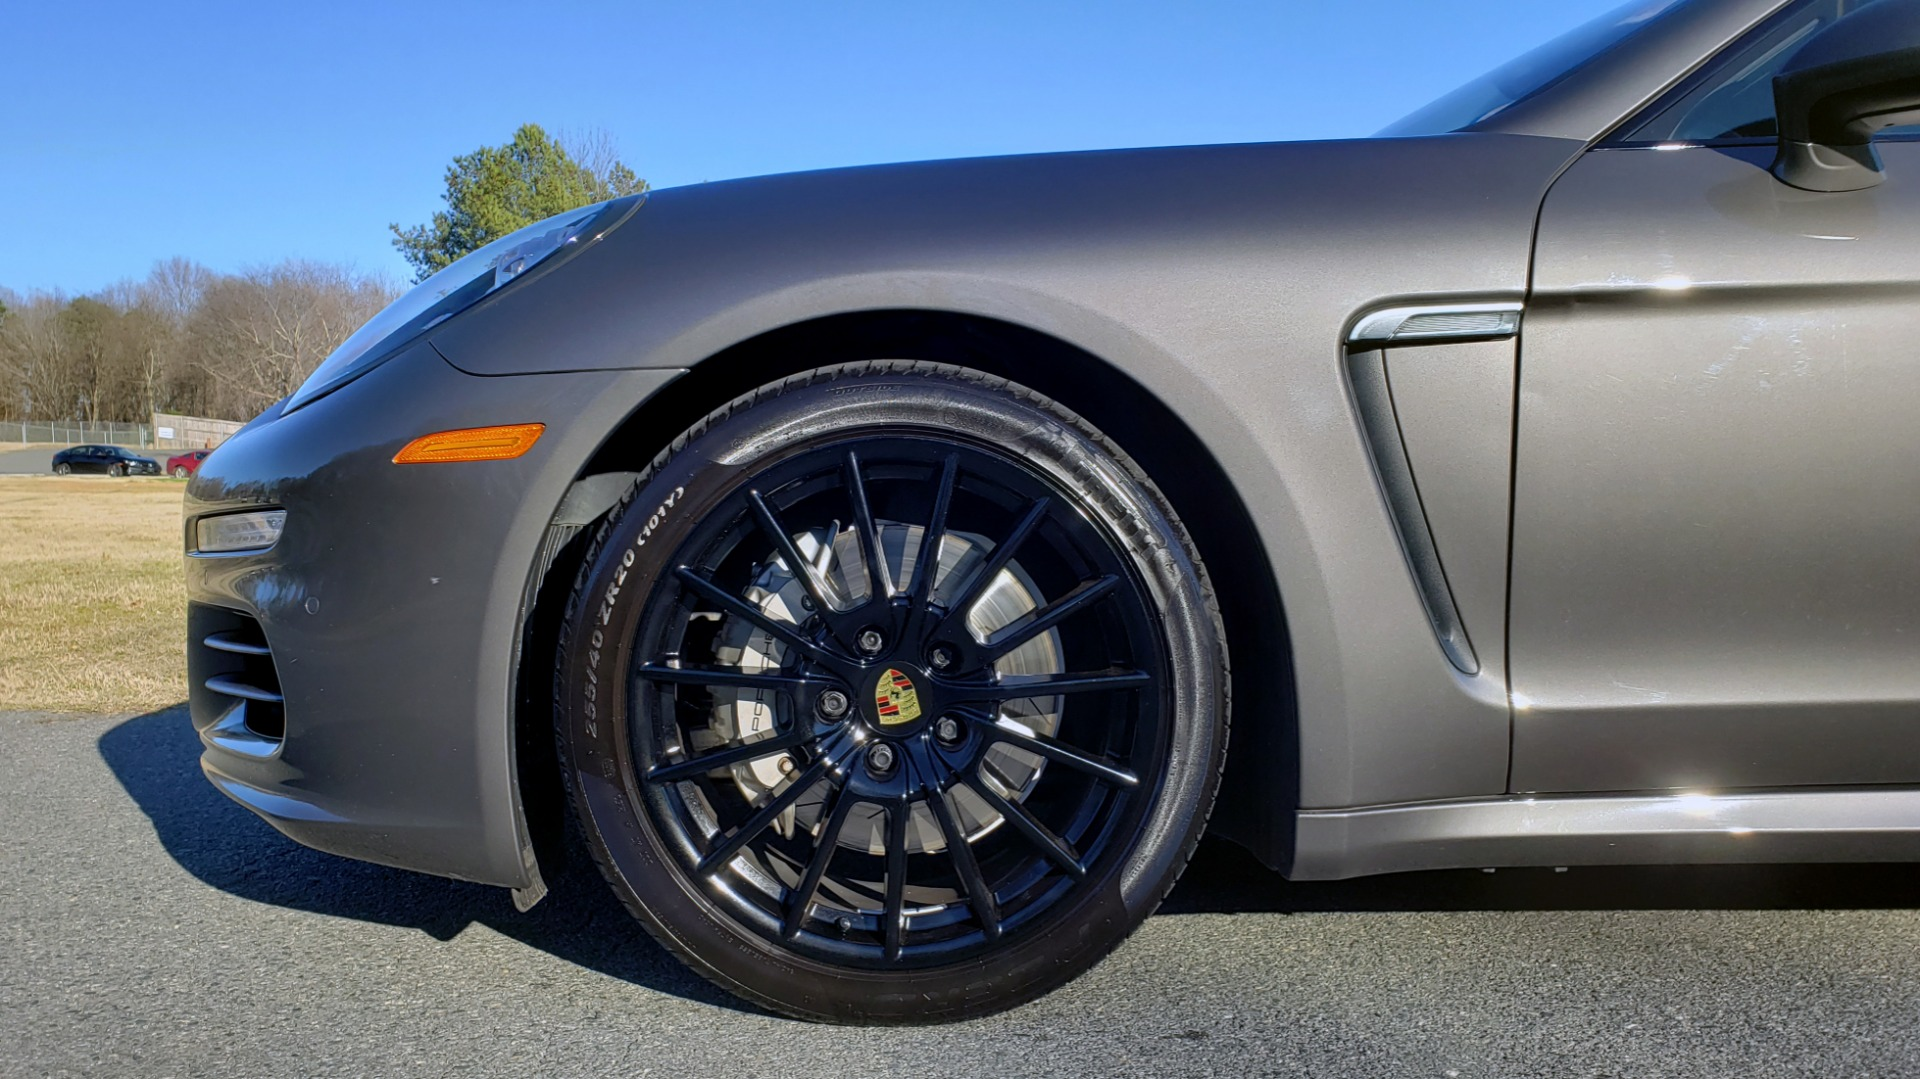 Used 2016 Porsche PANAMERA S / TURBO V6 / PDK / NAV / BOSE / SNRF / LDW / REARVIEW for sale Sold at Formula Imports in Charlotte NC 28227 95